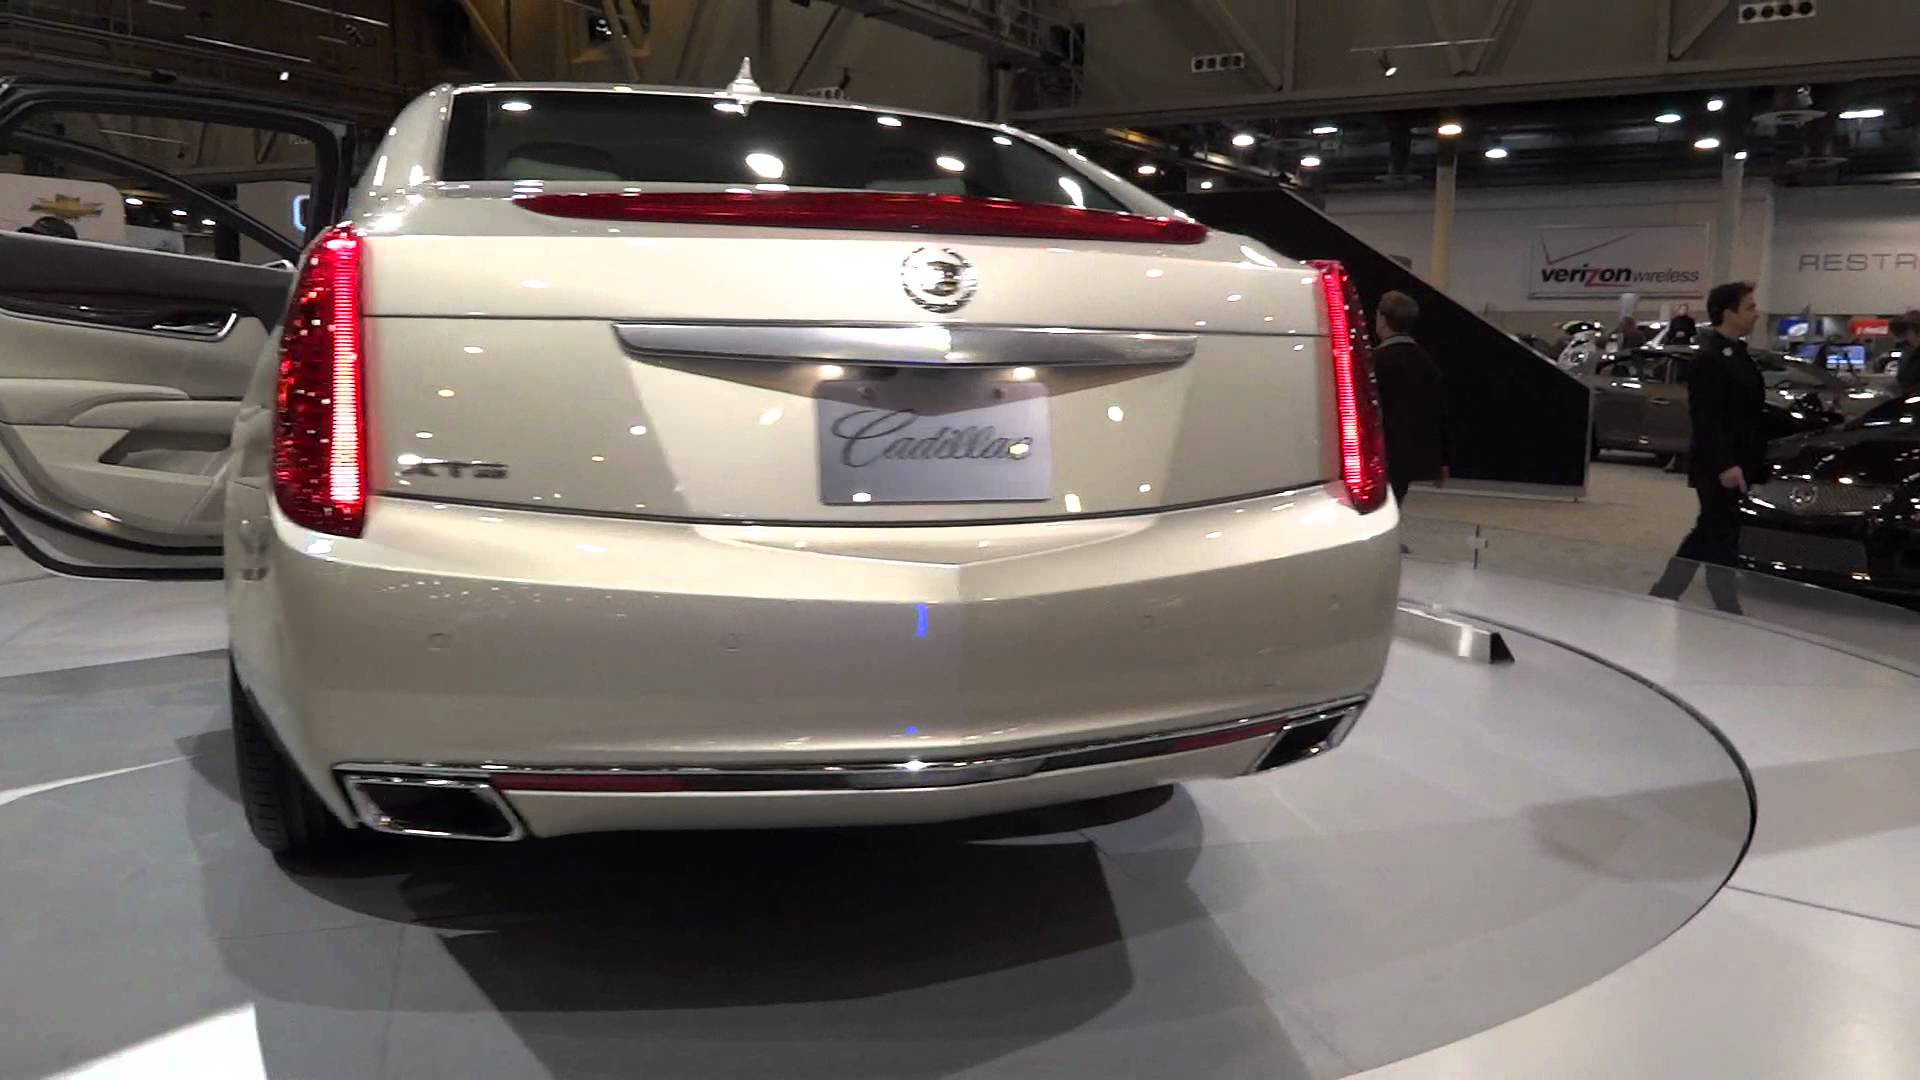 Watch together with Cadillac Deville besides Cadillac Dts Funeral Coach together with 69324609 together with 12278 Just Bought A 2006 Town Car 25th Anniversary Edition. on cadillac dts